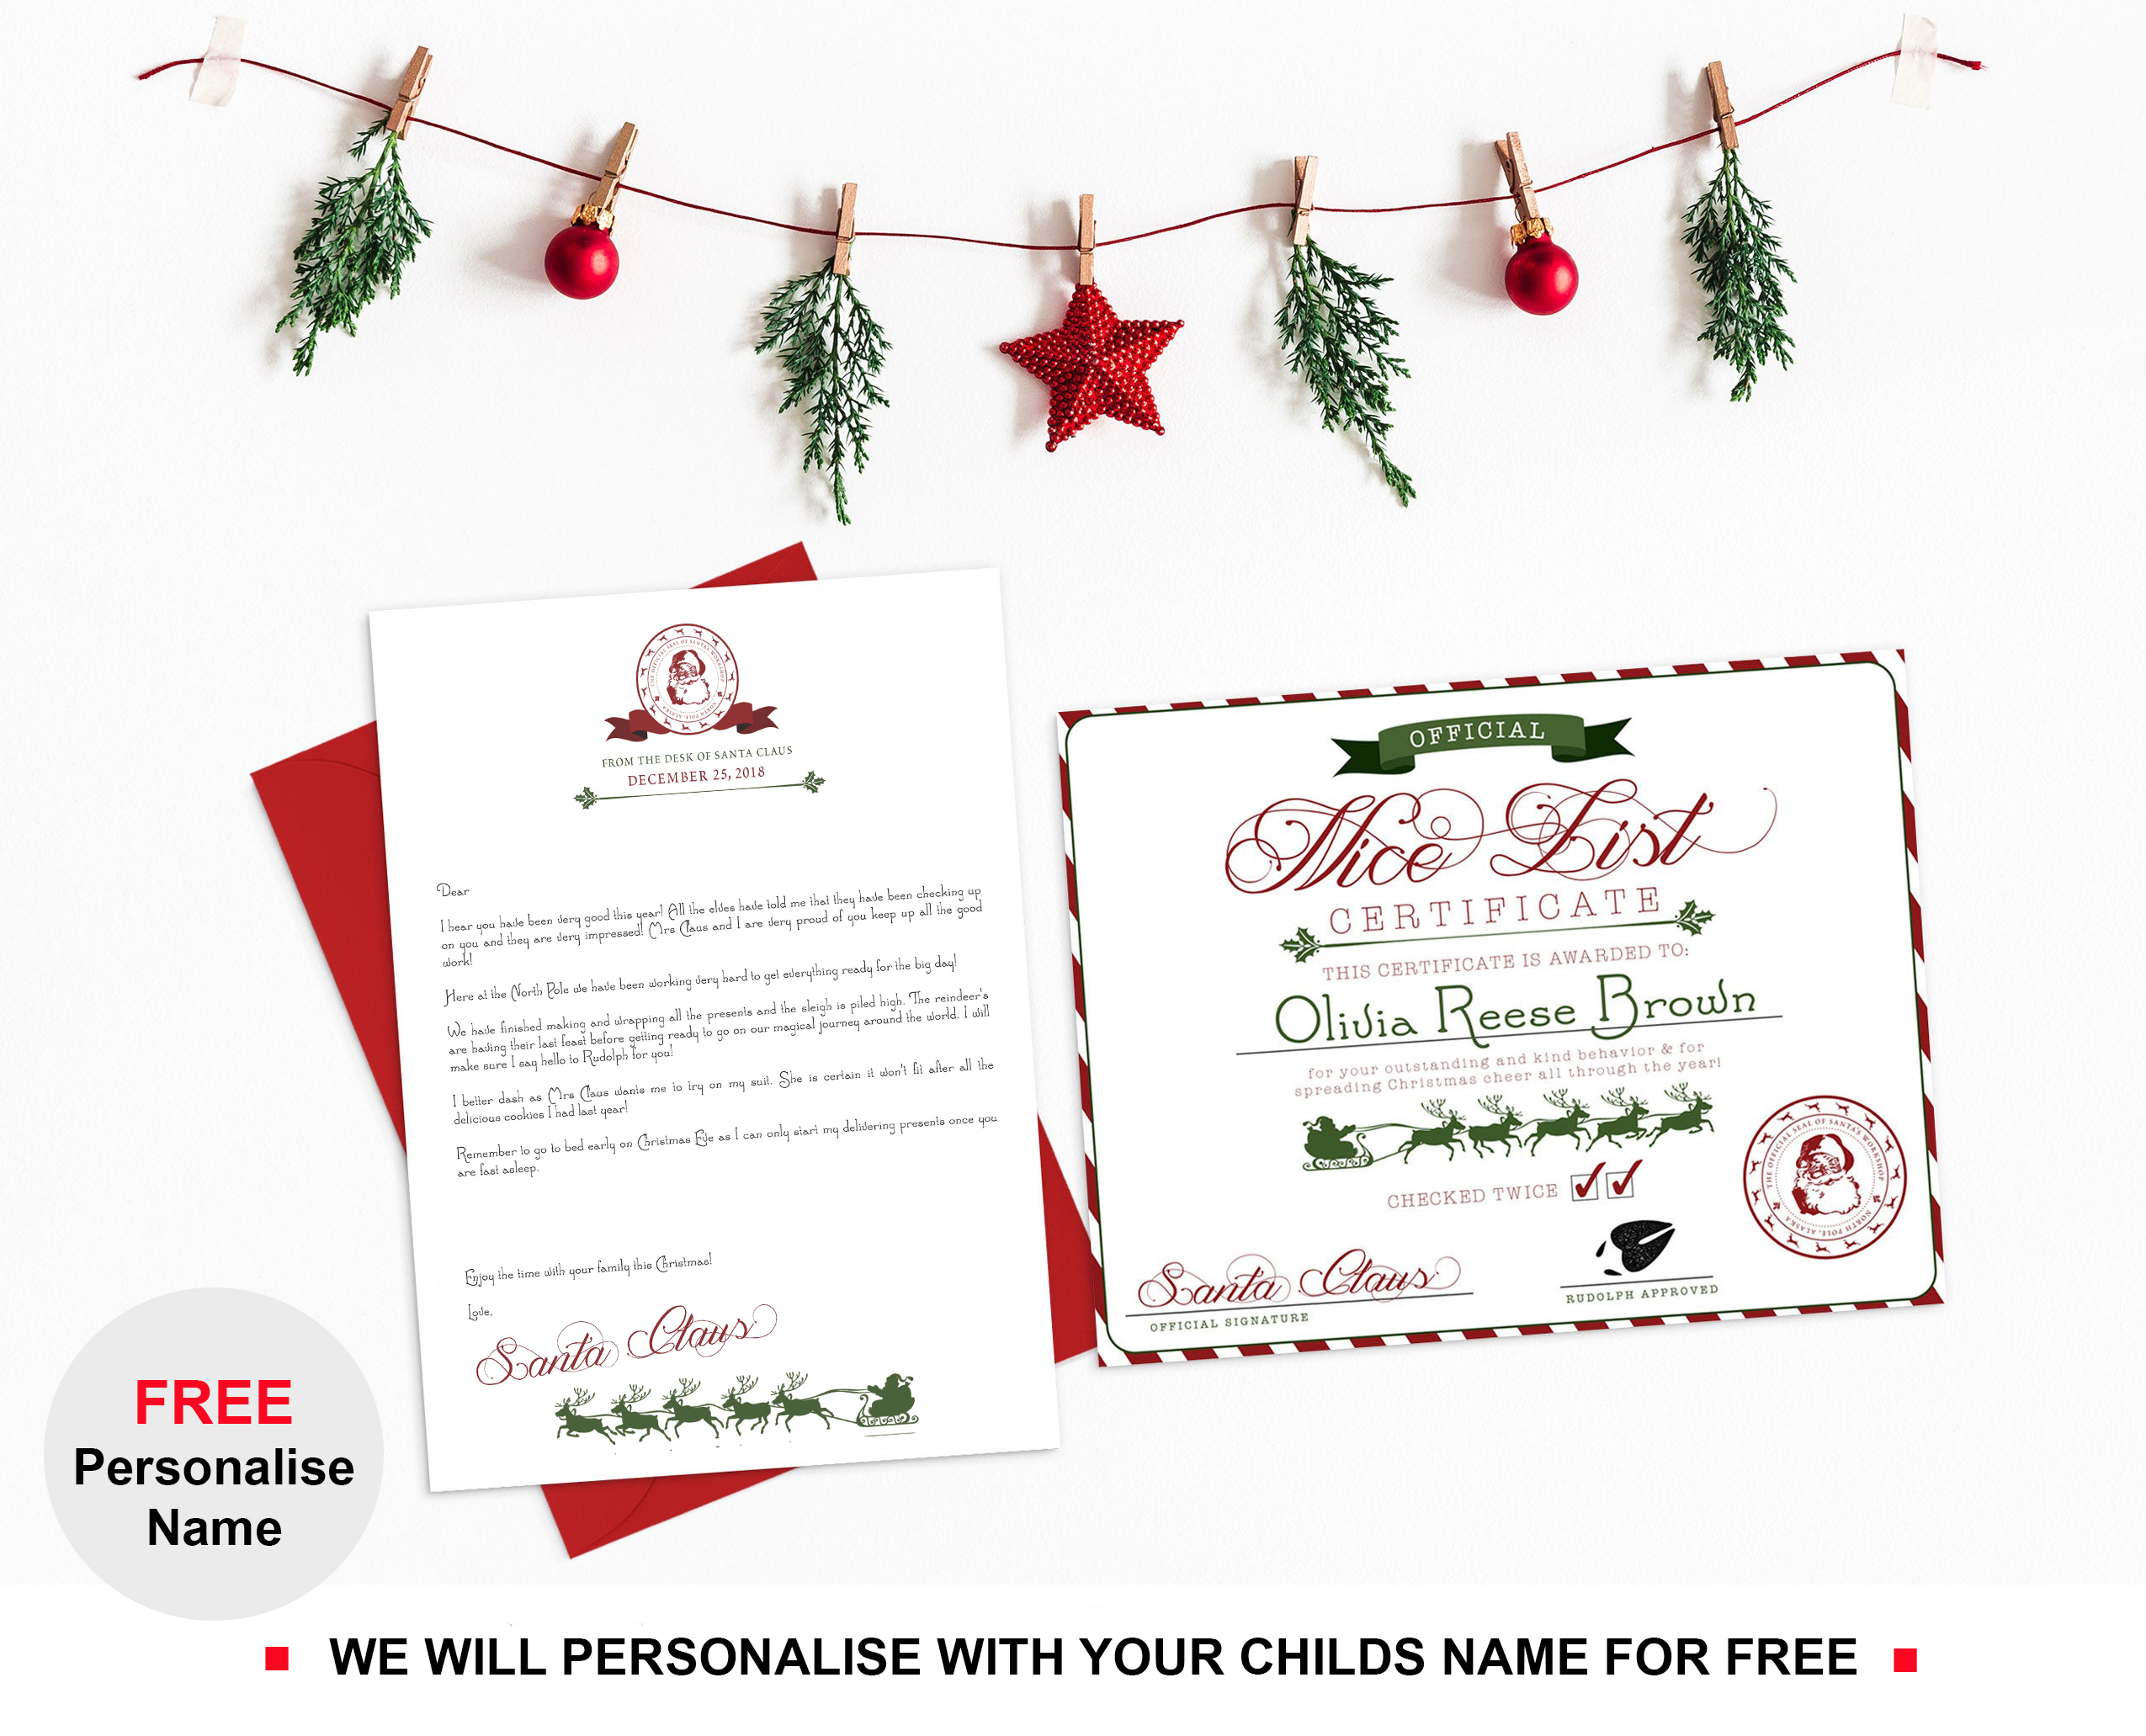 Personalised Letter From Santa Claus Father Christmas Nice List Certificate Ebay